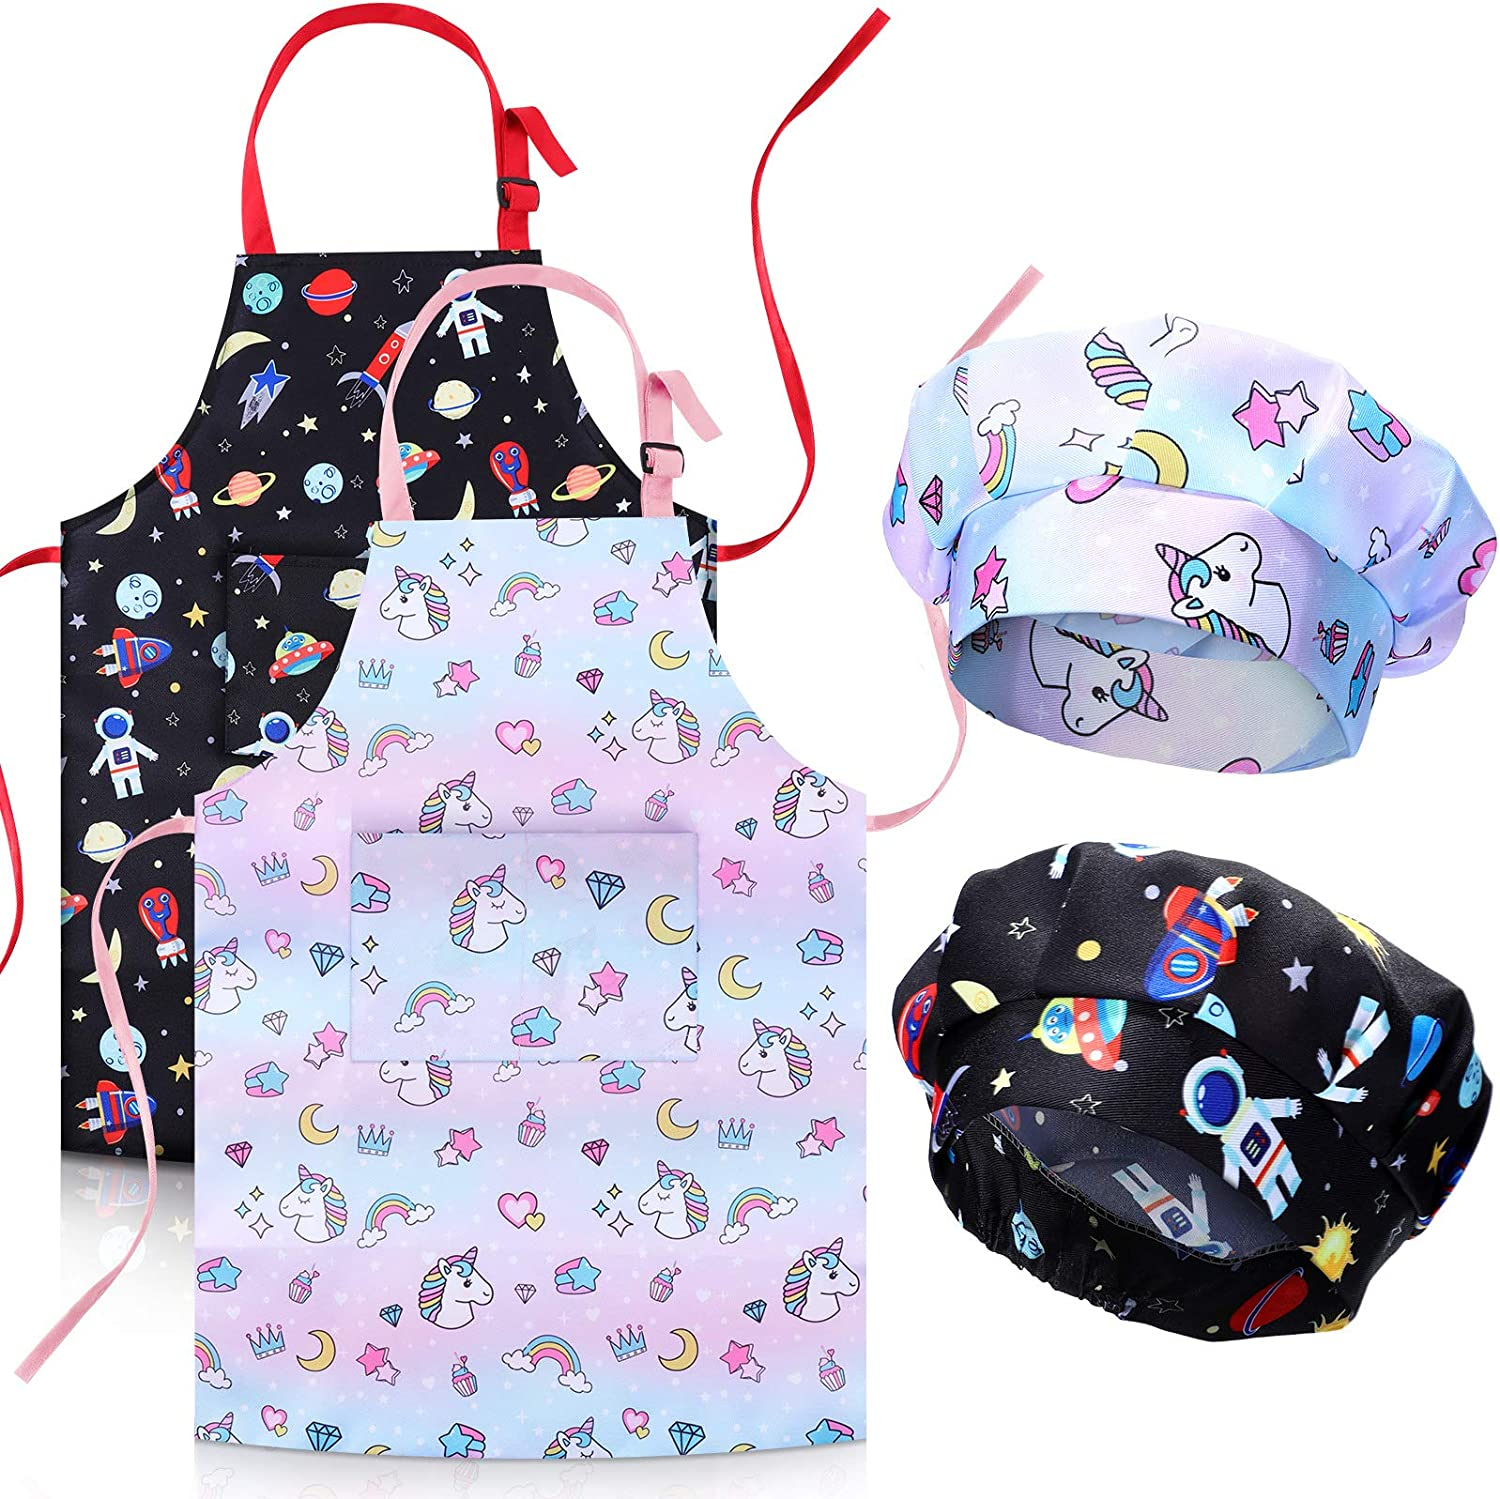 2 Pieces Kids Apron Chef Hat Set Unicorns Aliens Printed Aprons for Boys and Girls Cooking Baking Crafting Gardening Large Size